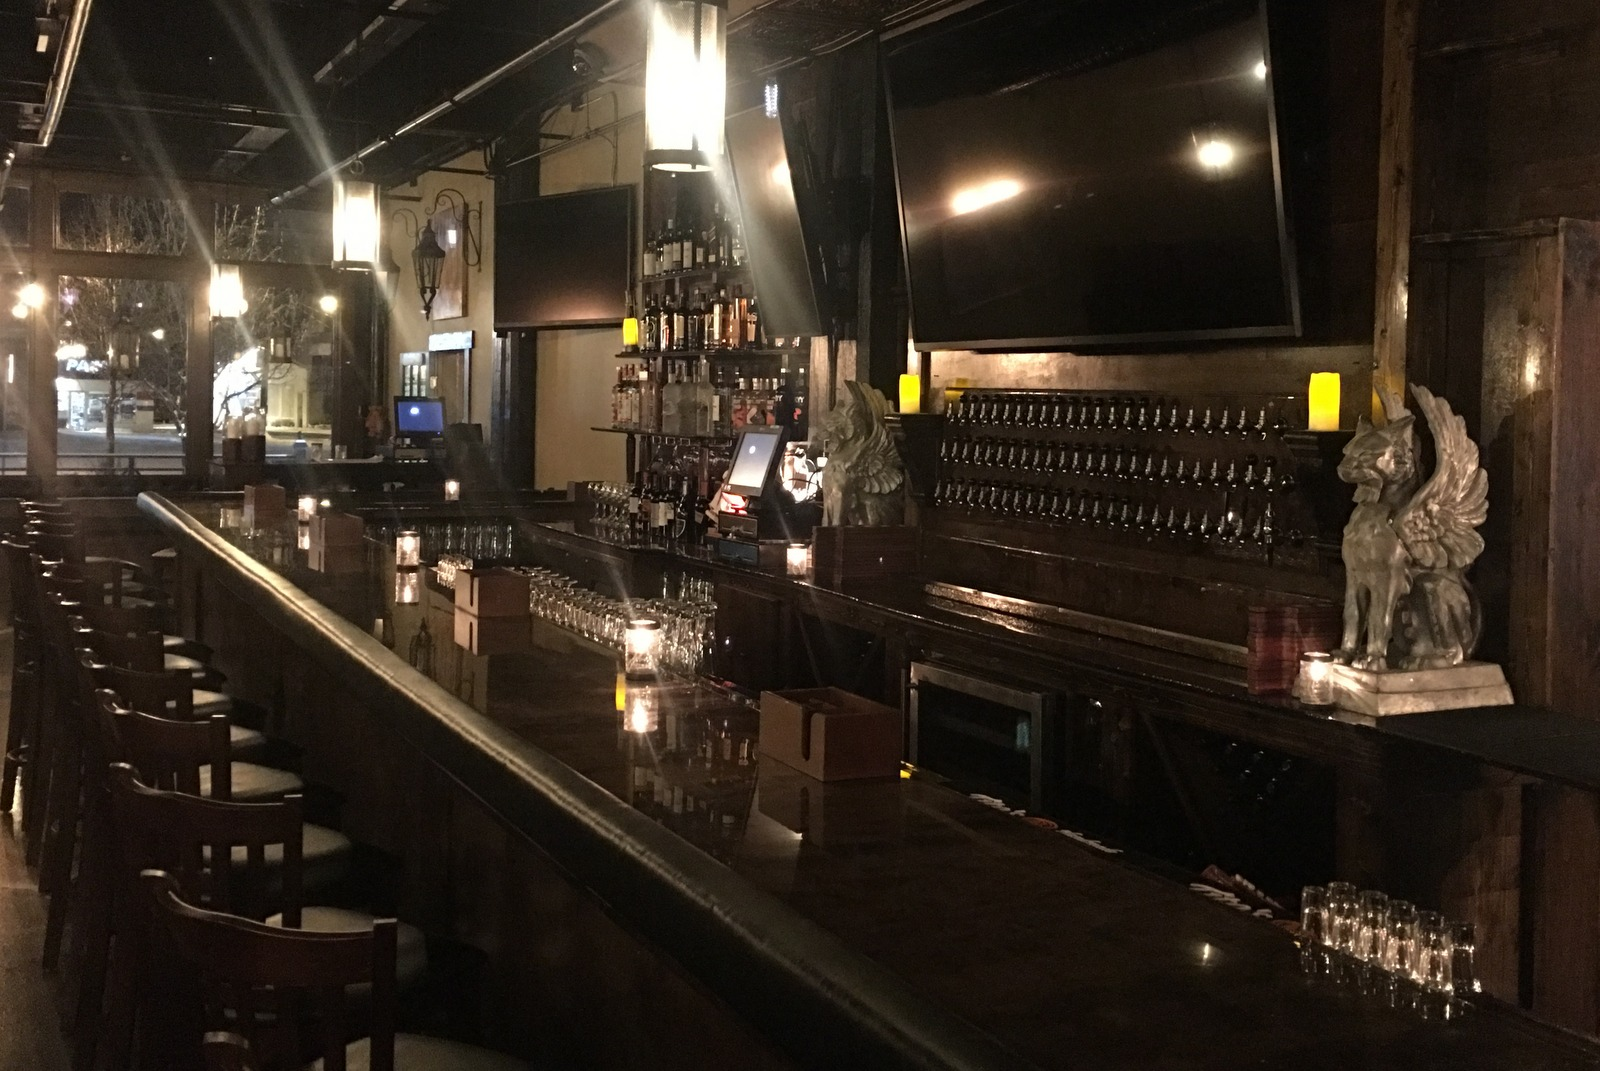 A new 40-foot bar will seat 25. (Photo: Griffon Gastropub)